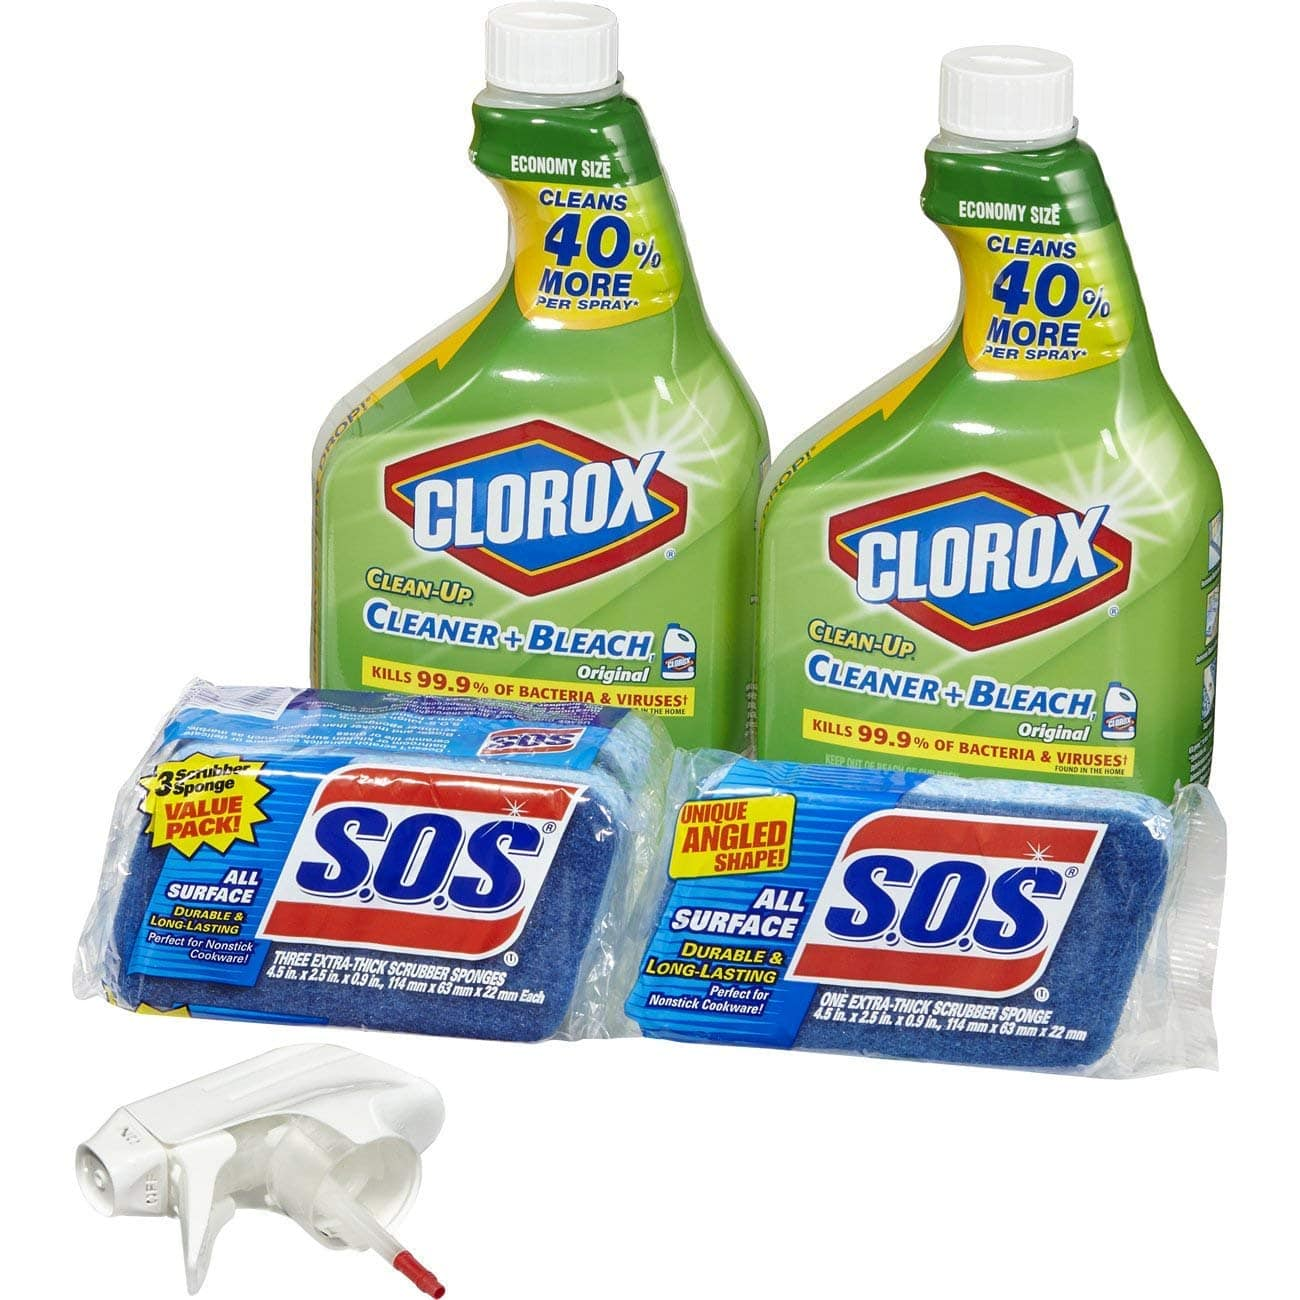 2-Ct 32oz Clorox Clean-Up + 4-Ct S.O.S Scrubber Sponges $9.37 5% or $8.12 15% AC ww/s&s + Free S/H